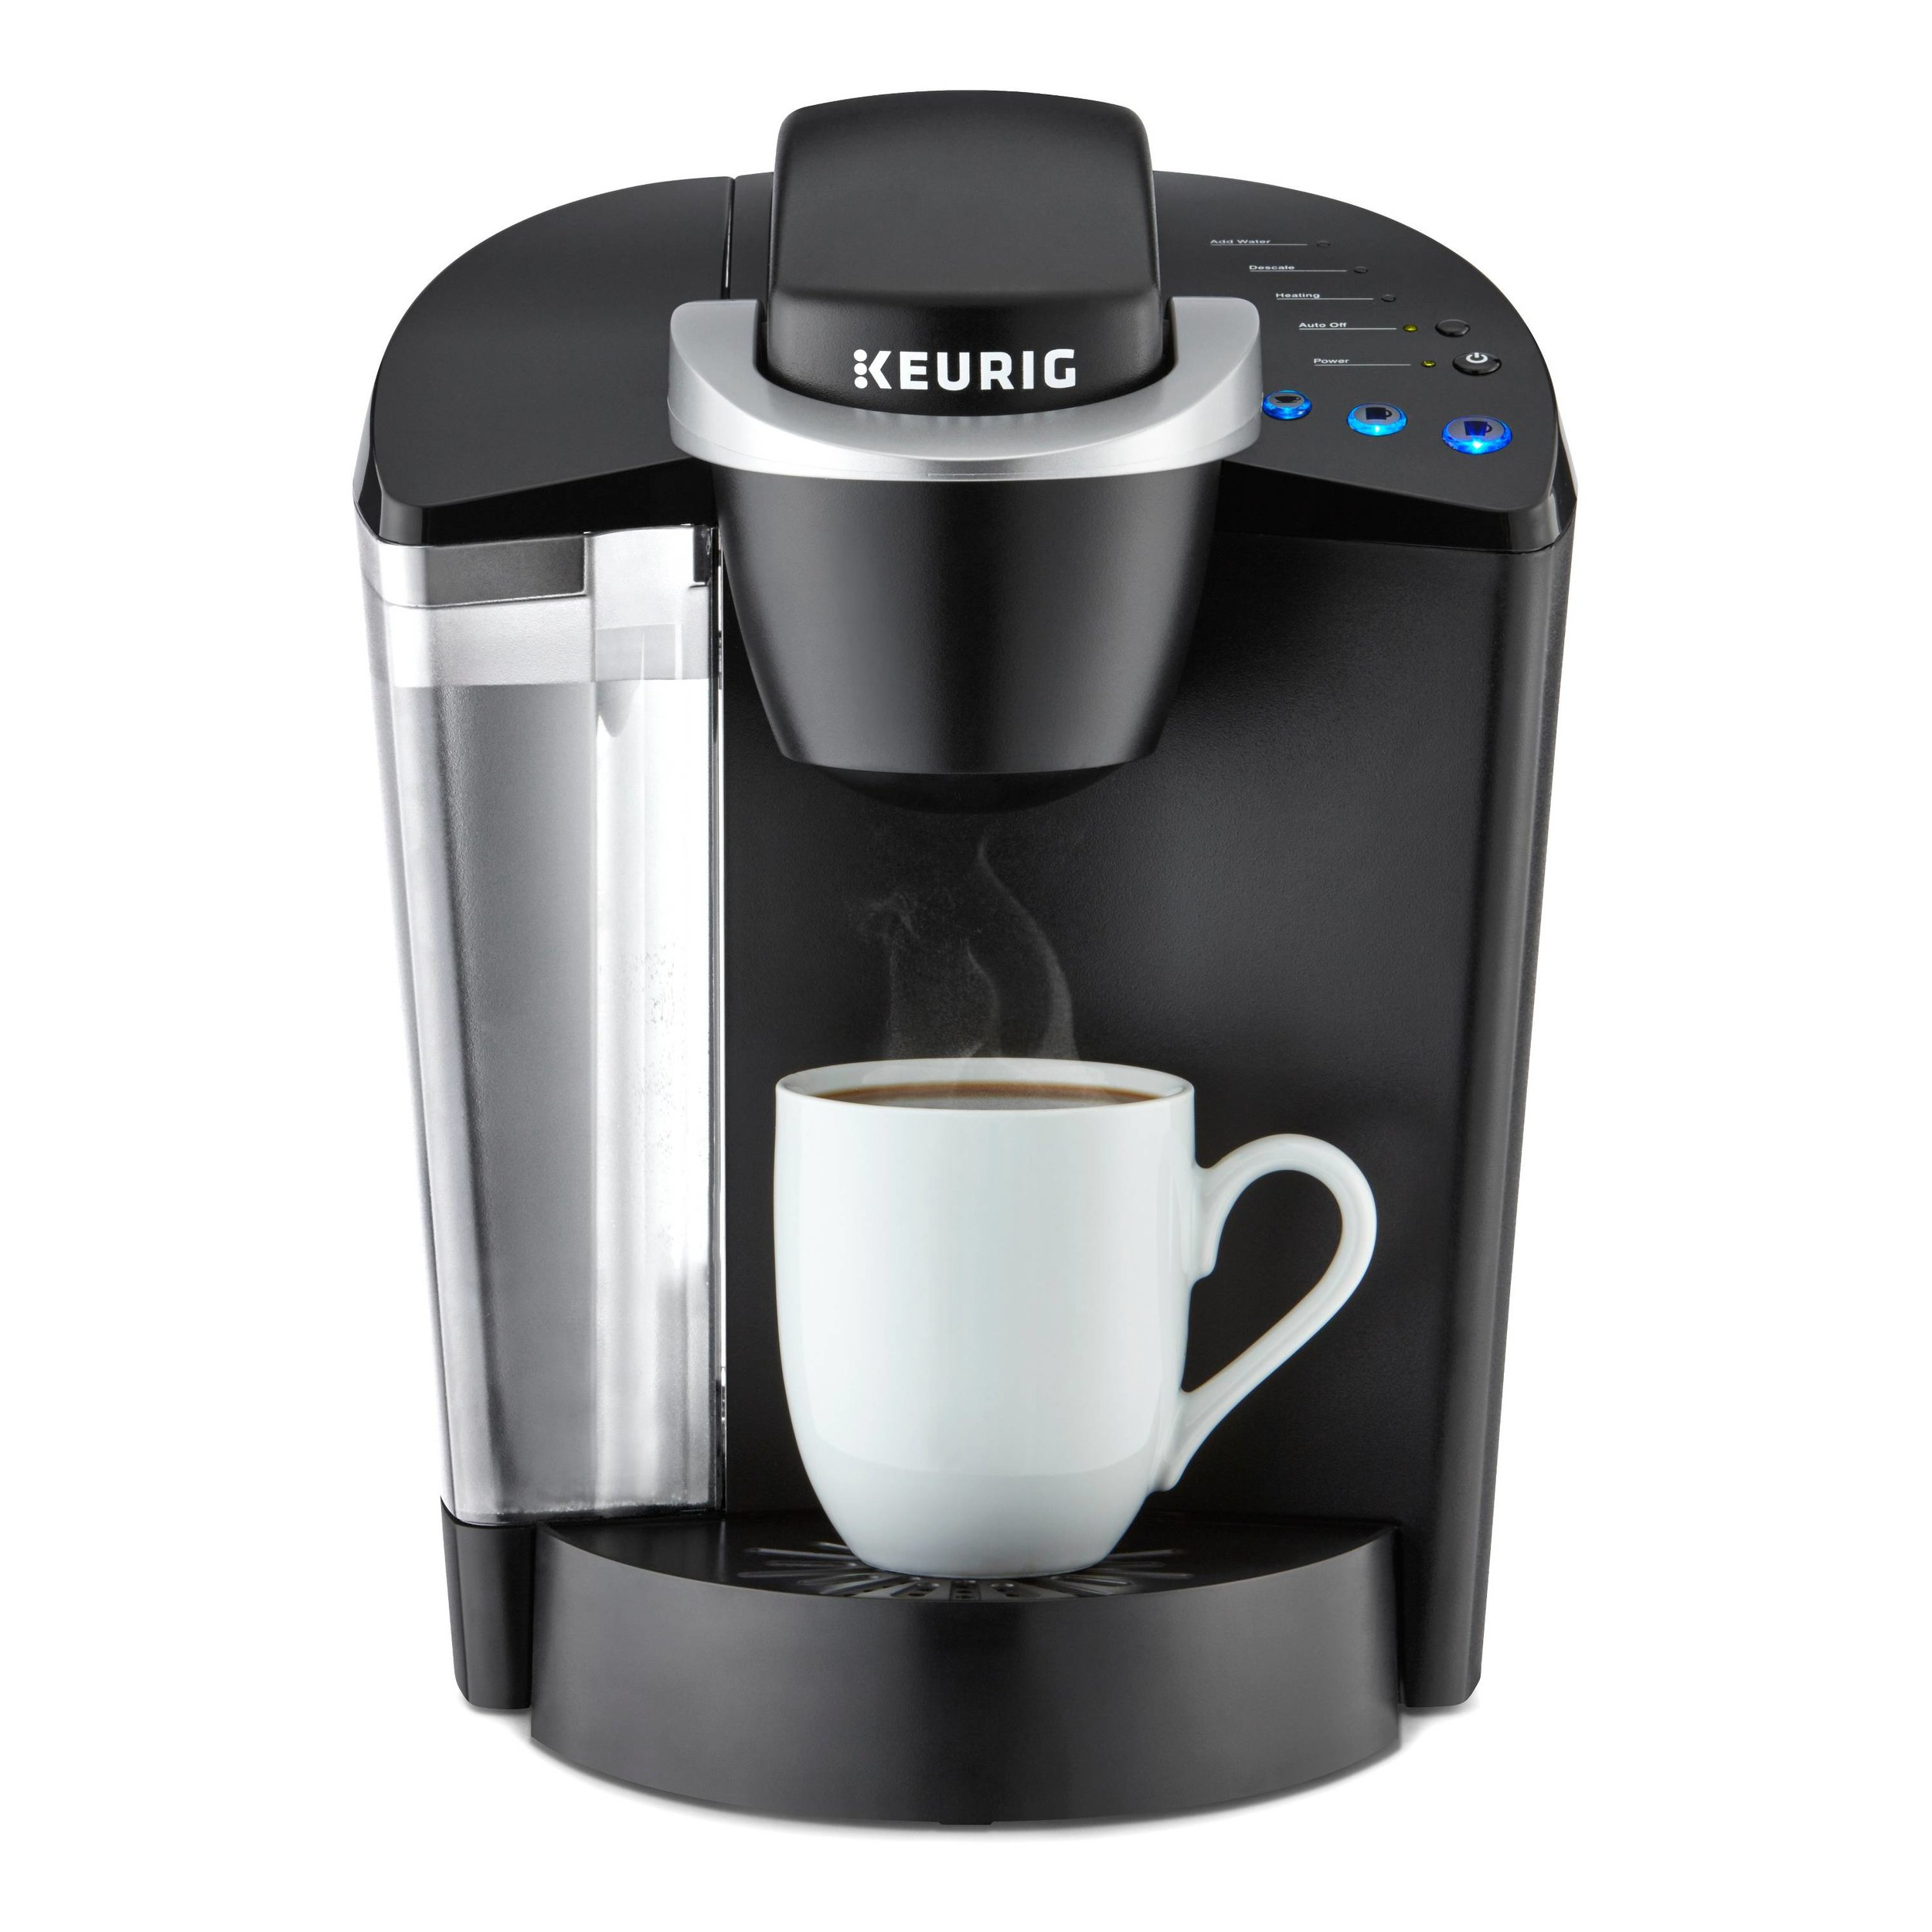 KEURIG... - because it's the fast and easy way to make a great beverage